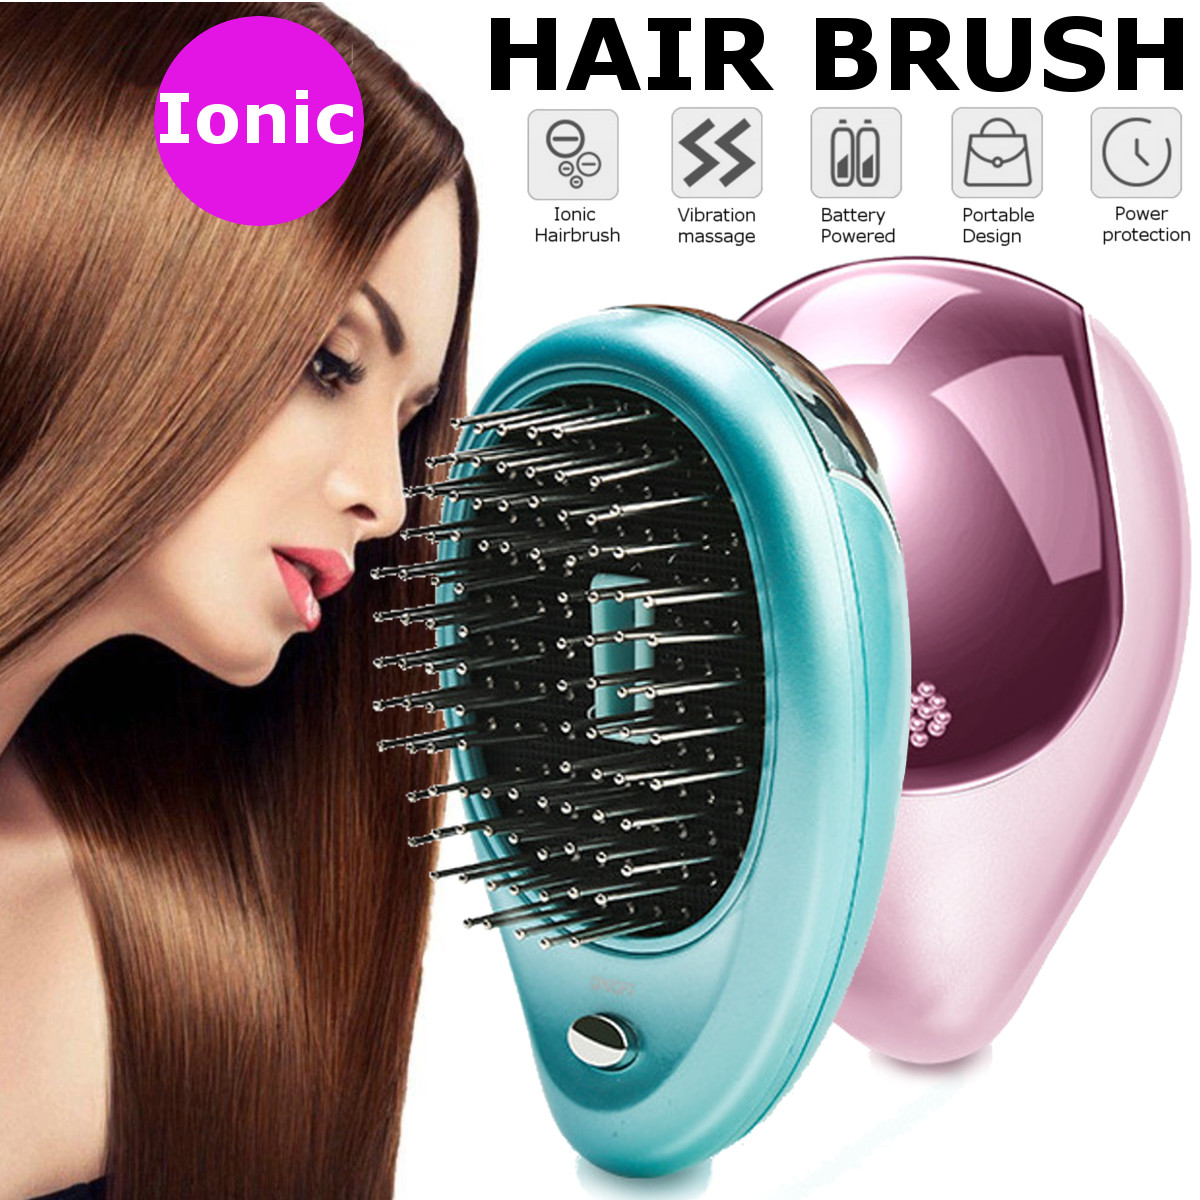 Portable Electric Ionic Hair Brush Straightener, Negative Ion Brush Comb with Vibration Massage Function, Battery Operated